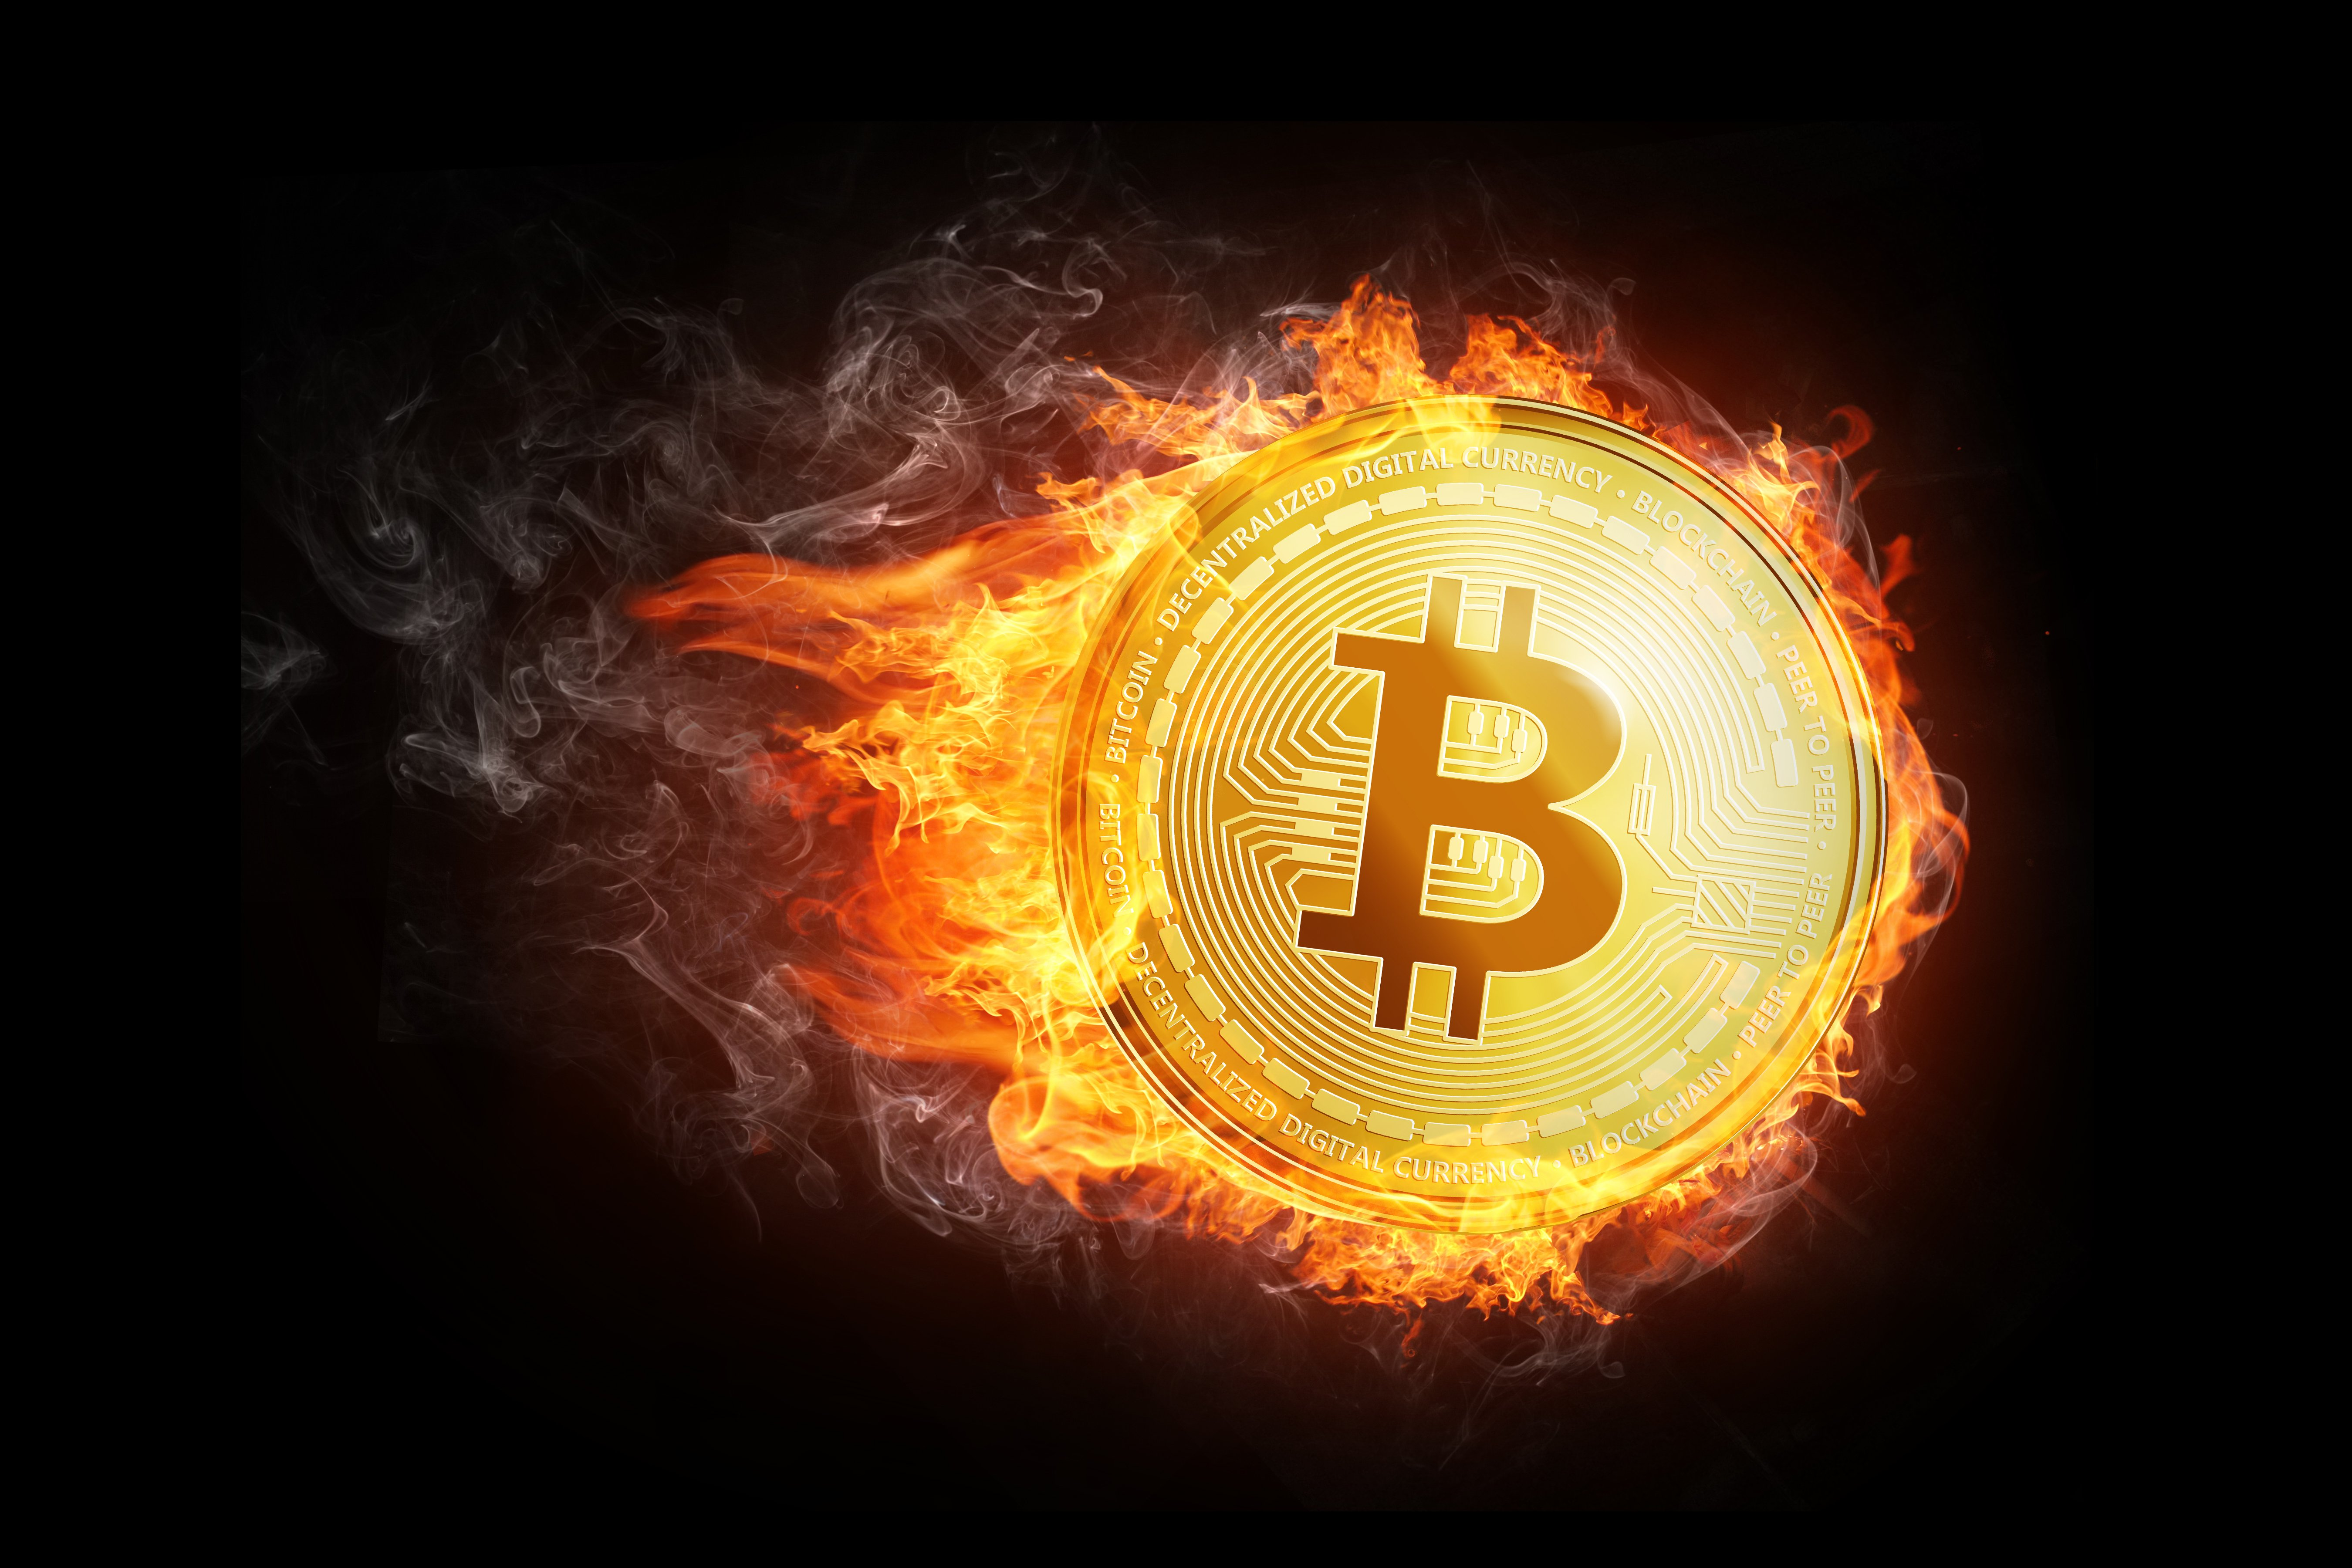 Golden bitcoin coin flying in fire flame